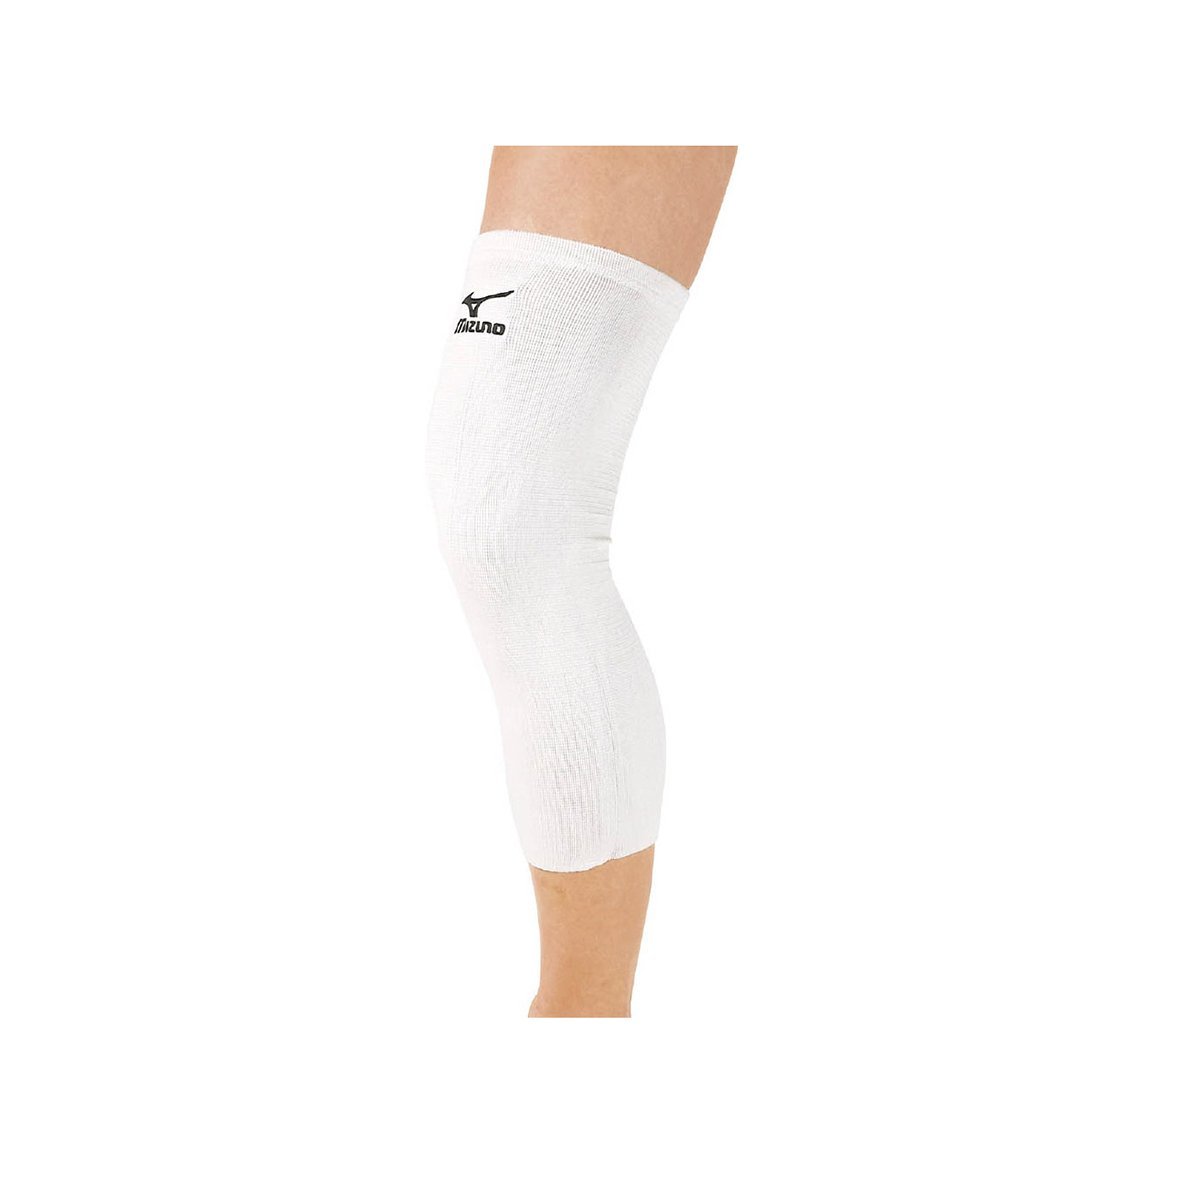 Volleyball Knee Pad Unisex 42cm White